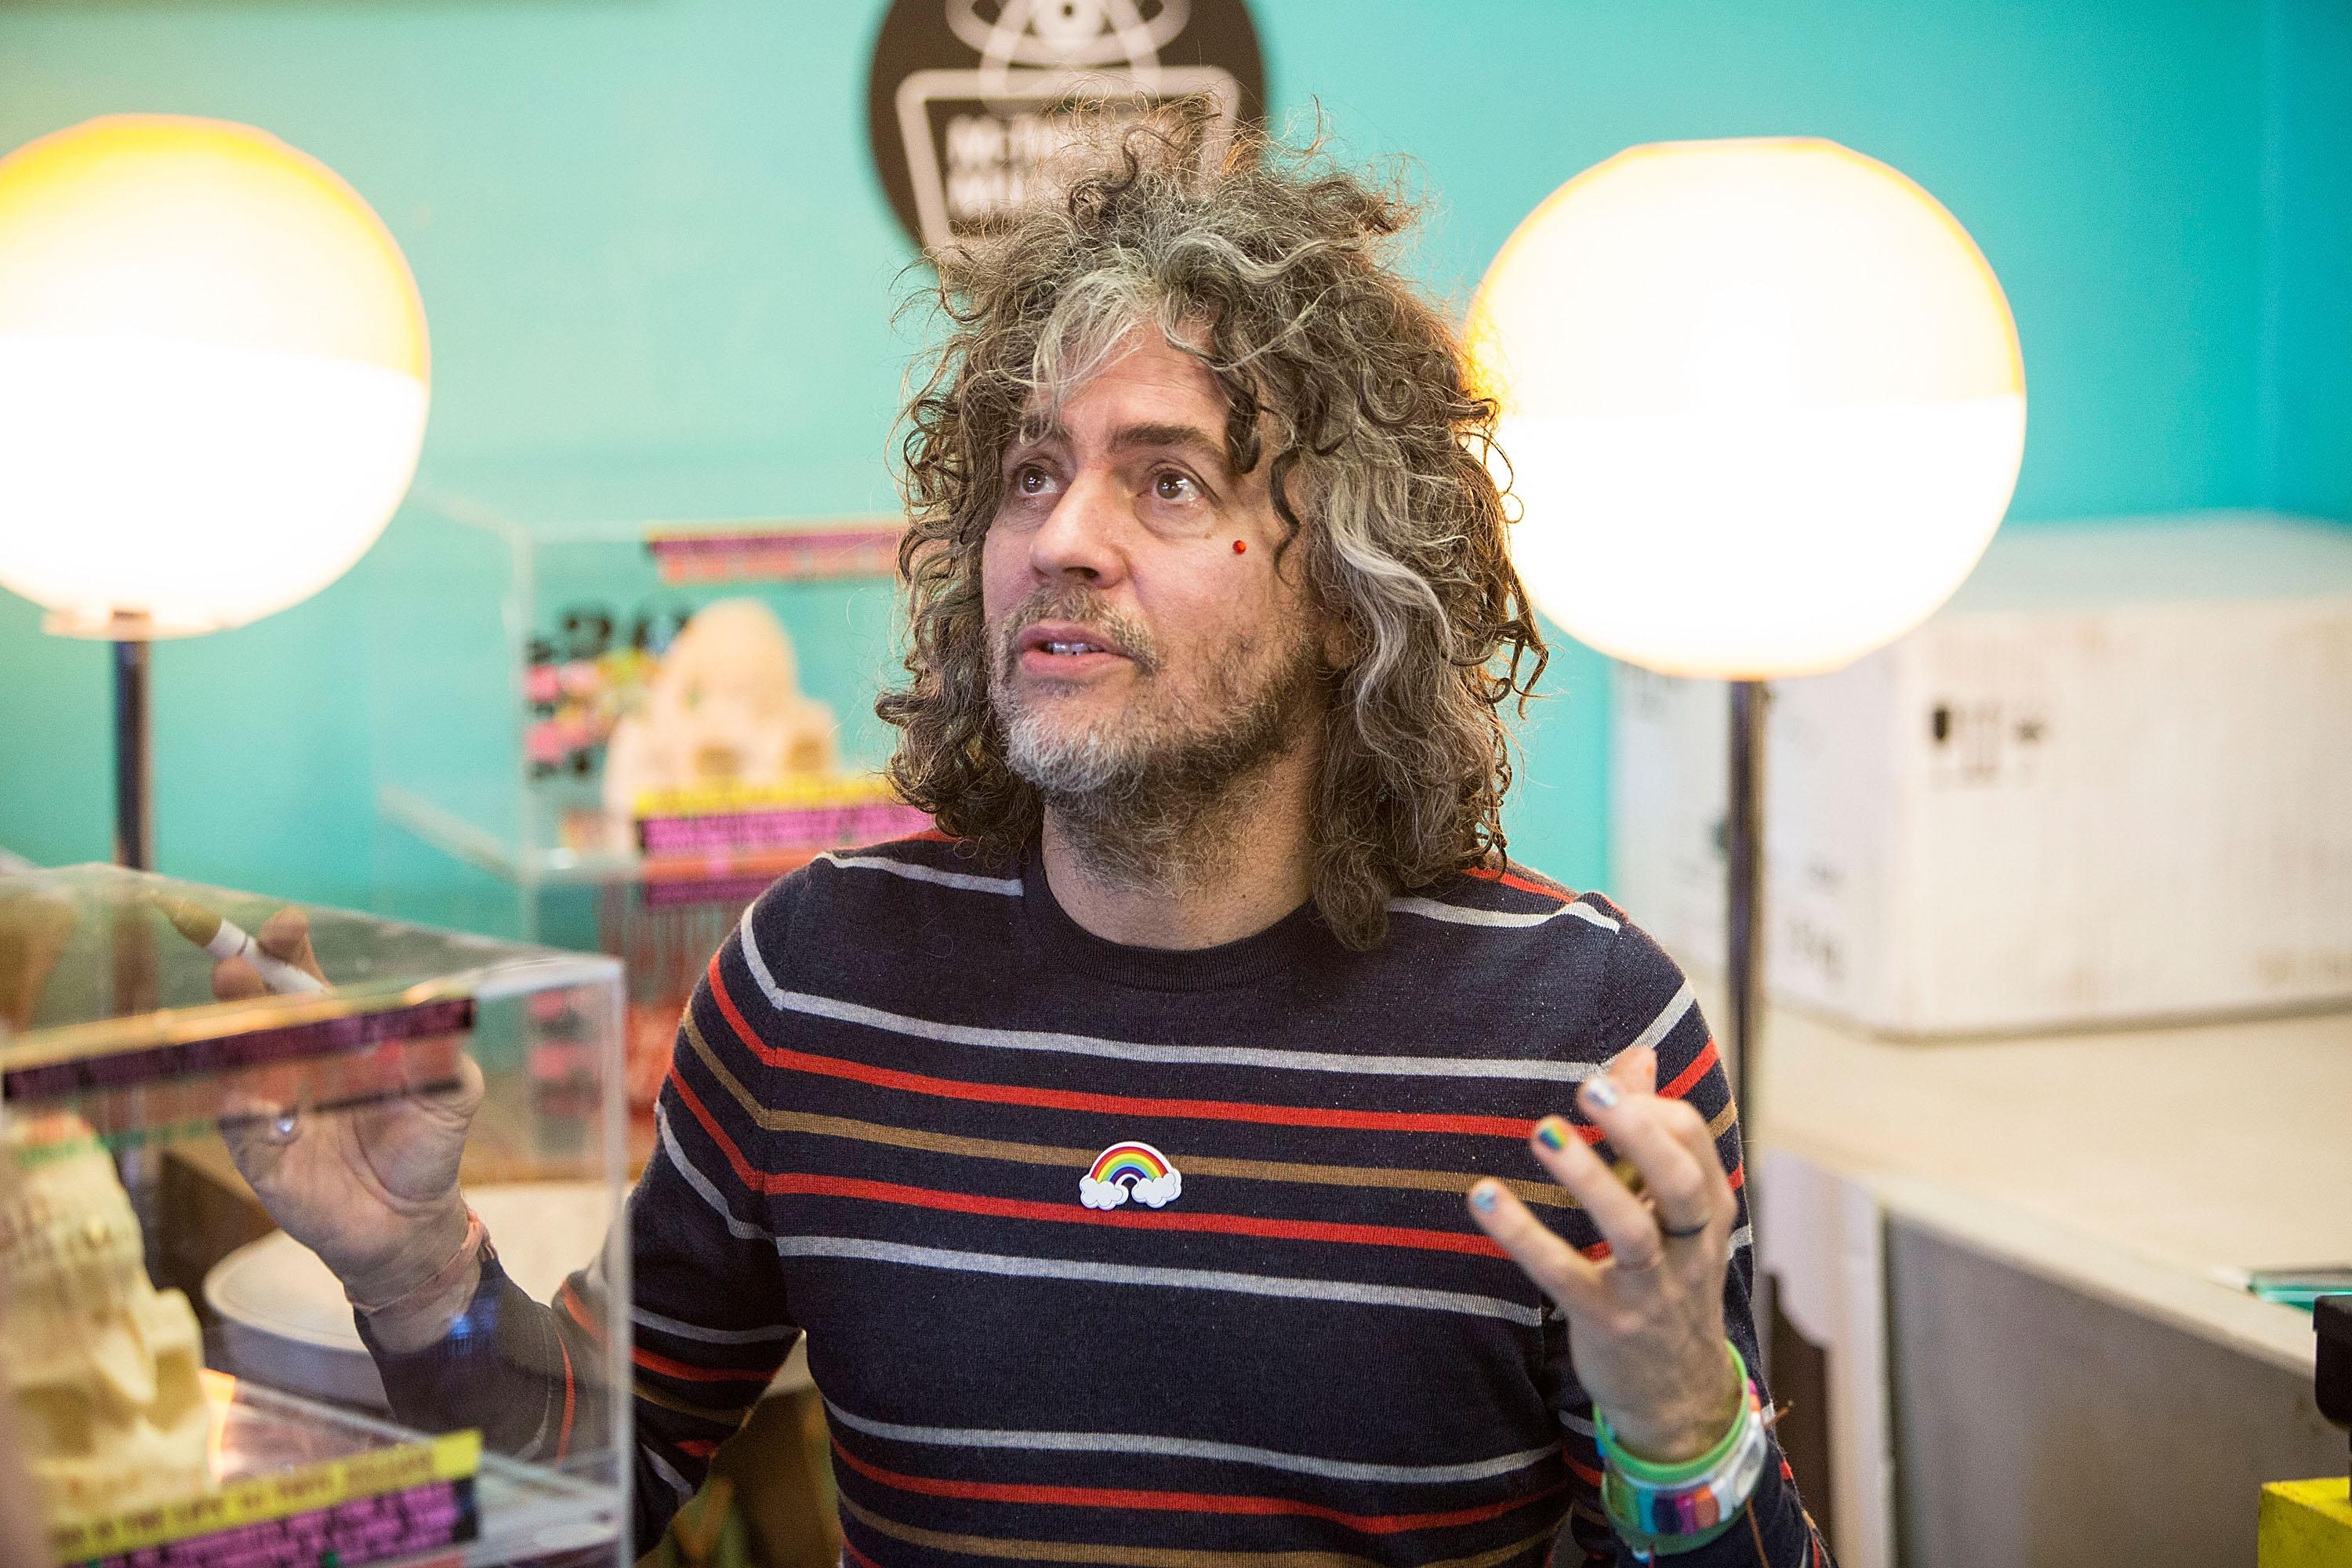 Wayne Coyne Calls Kliph Scurlock An Asshole And A Hater, Apologizes To Native Americans In First Interview Since Headdress-Gate